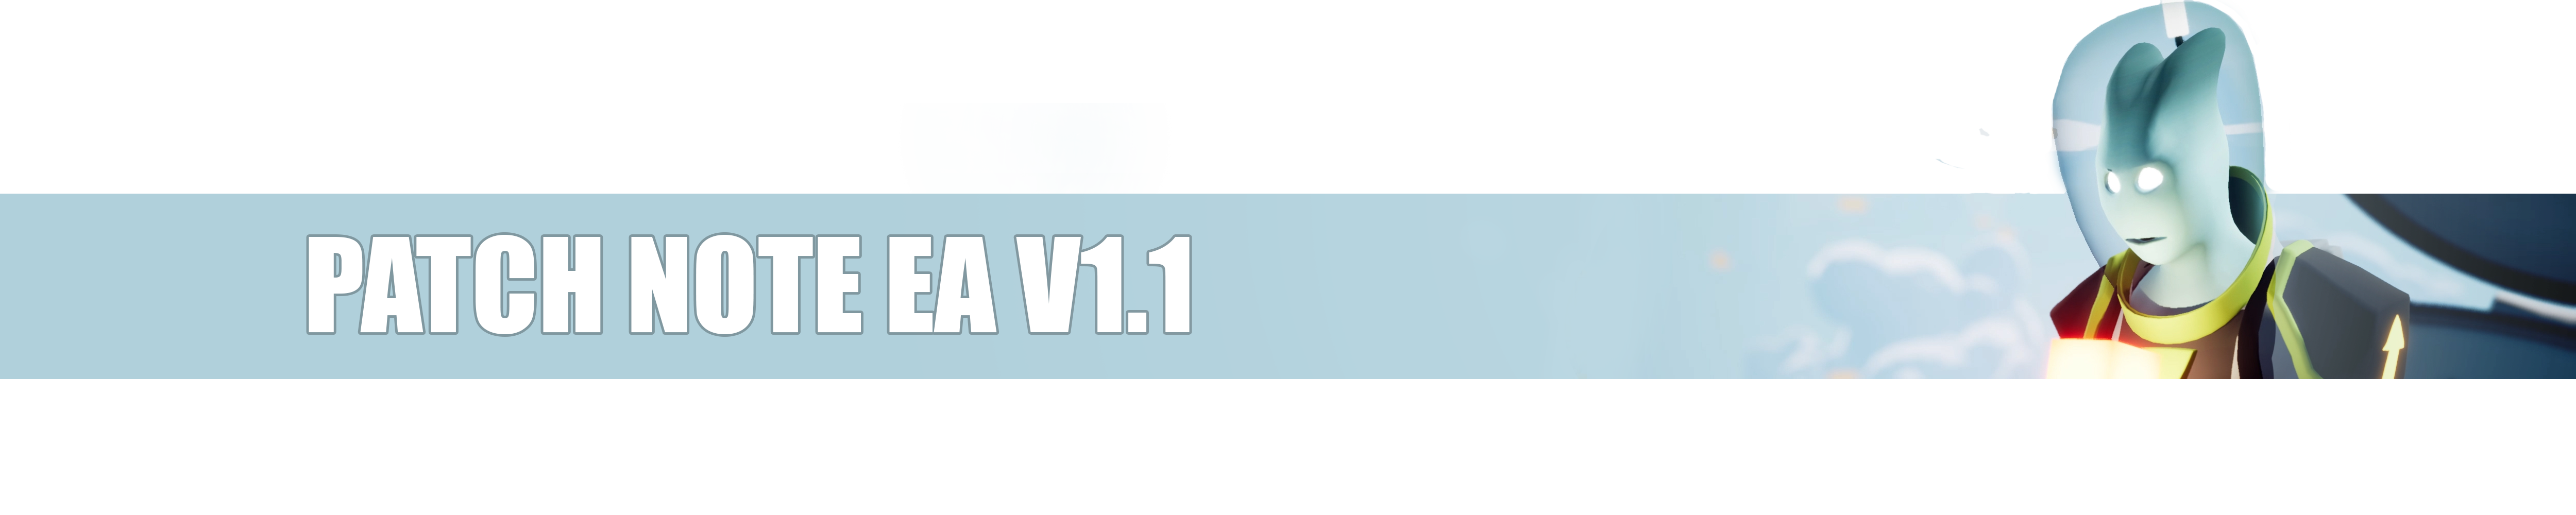 Patch note header EA